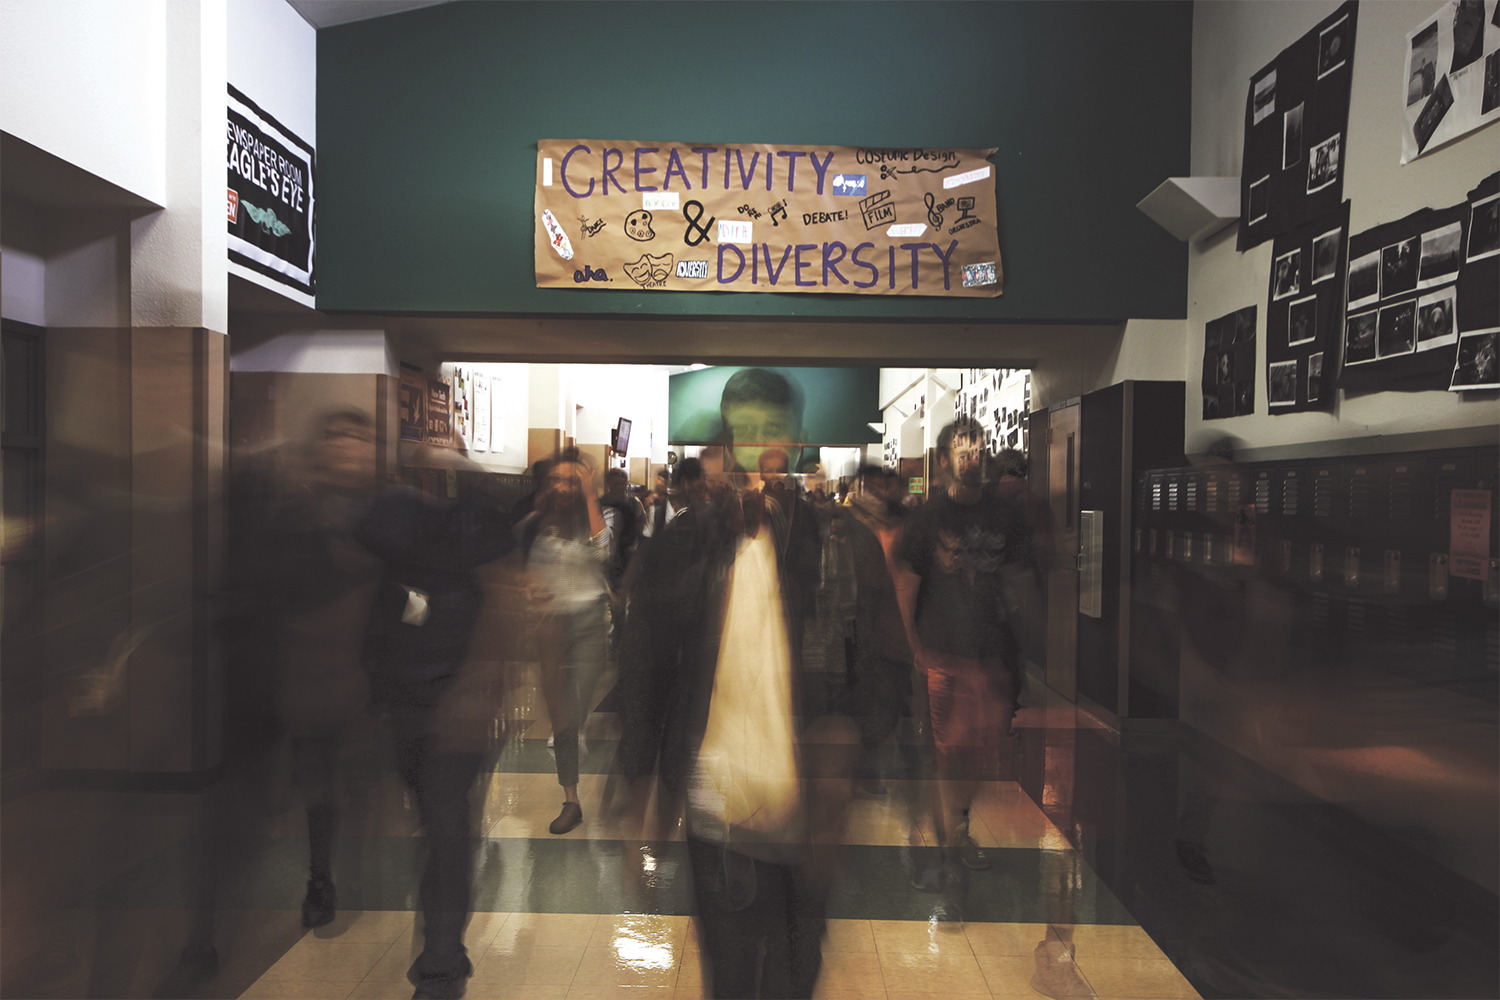 Students walk through the halls of Akins, designed for 2,300 students but now has 2,800.